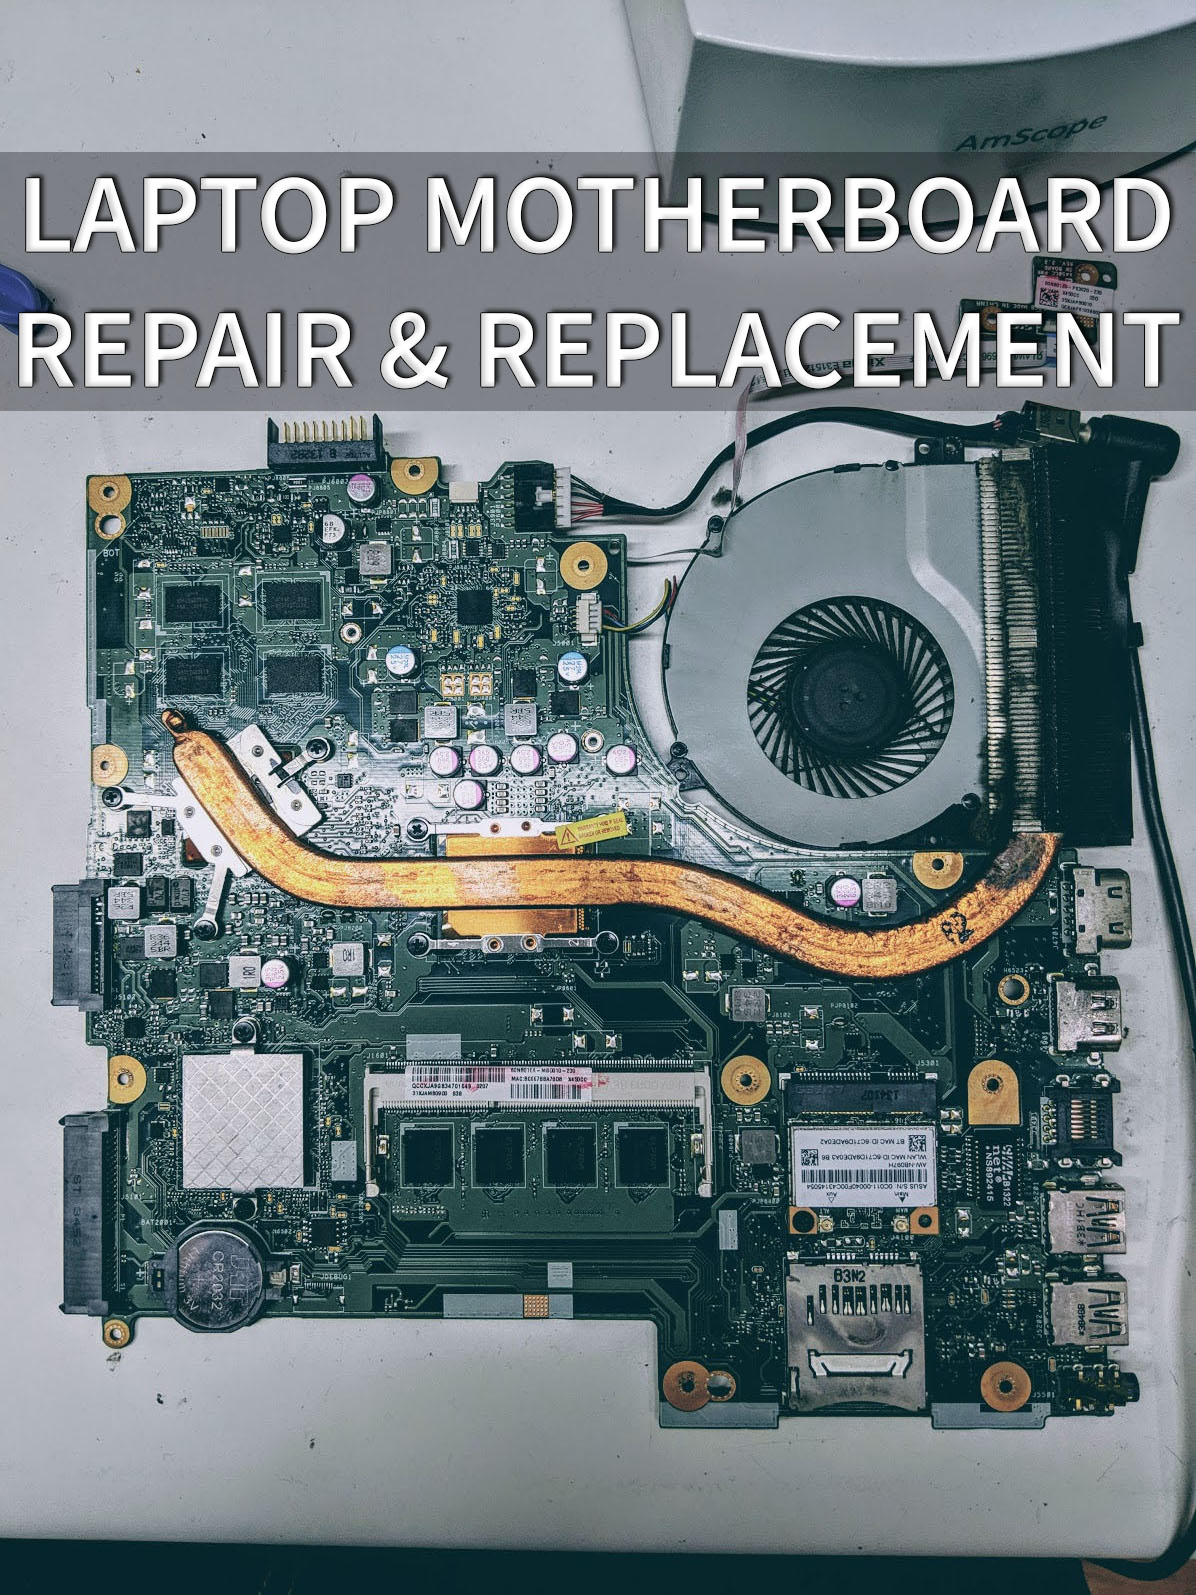 Laptop Motherboard Repair & Replacement